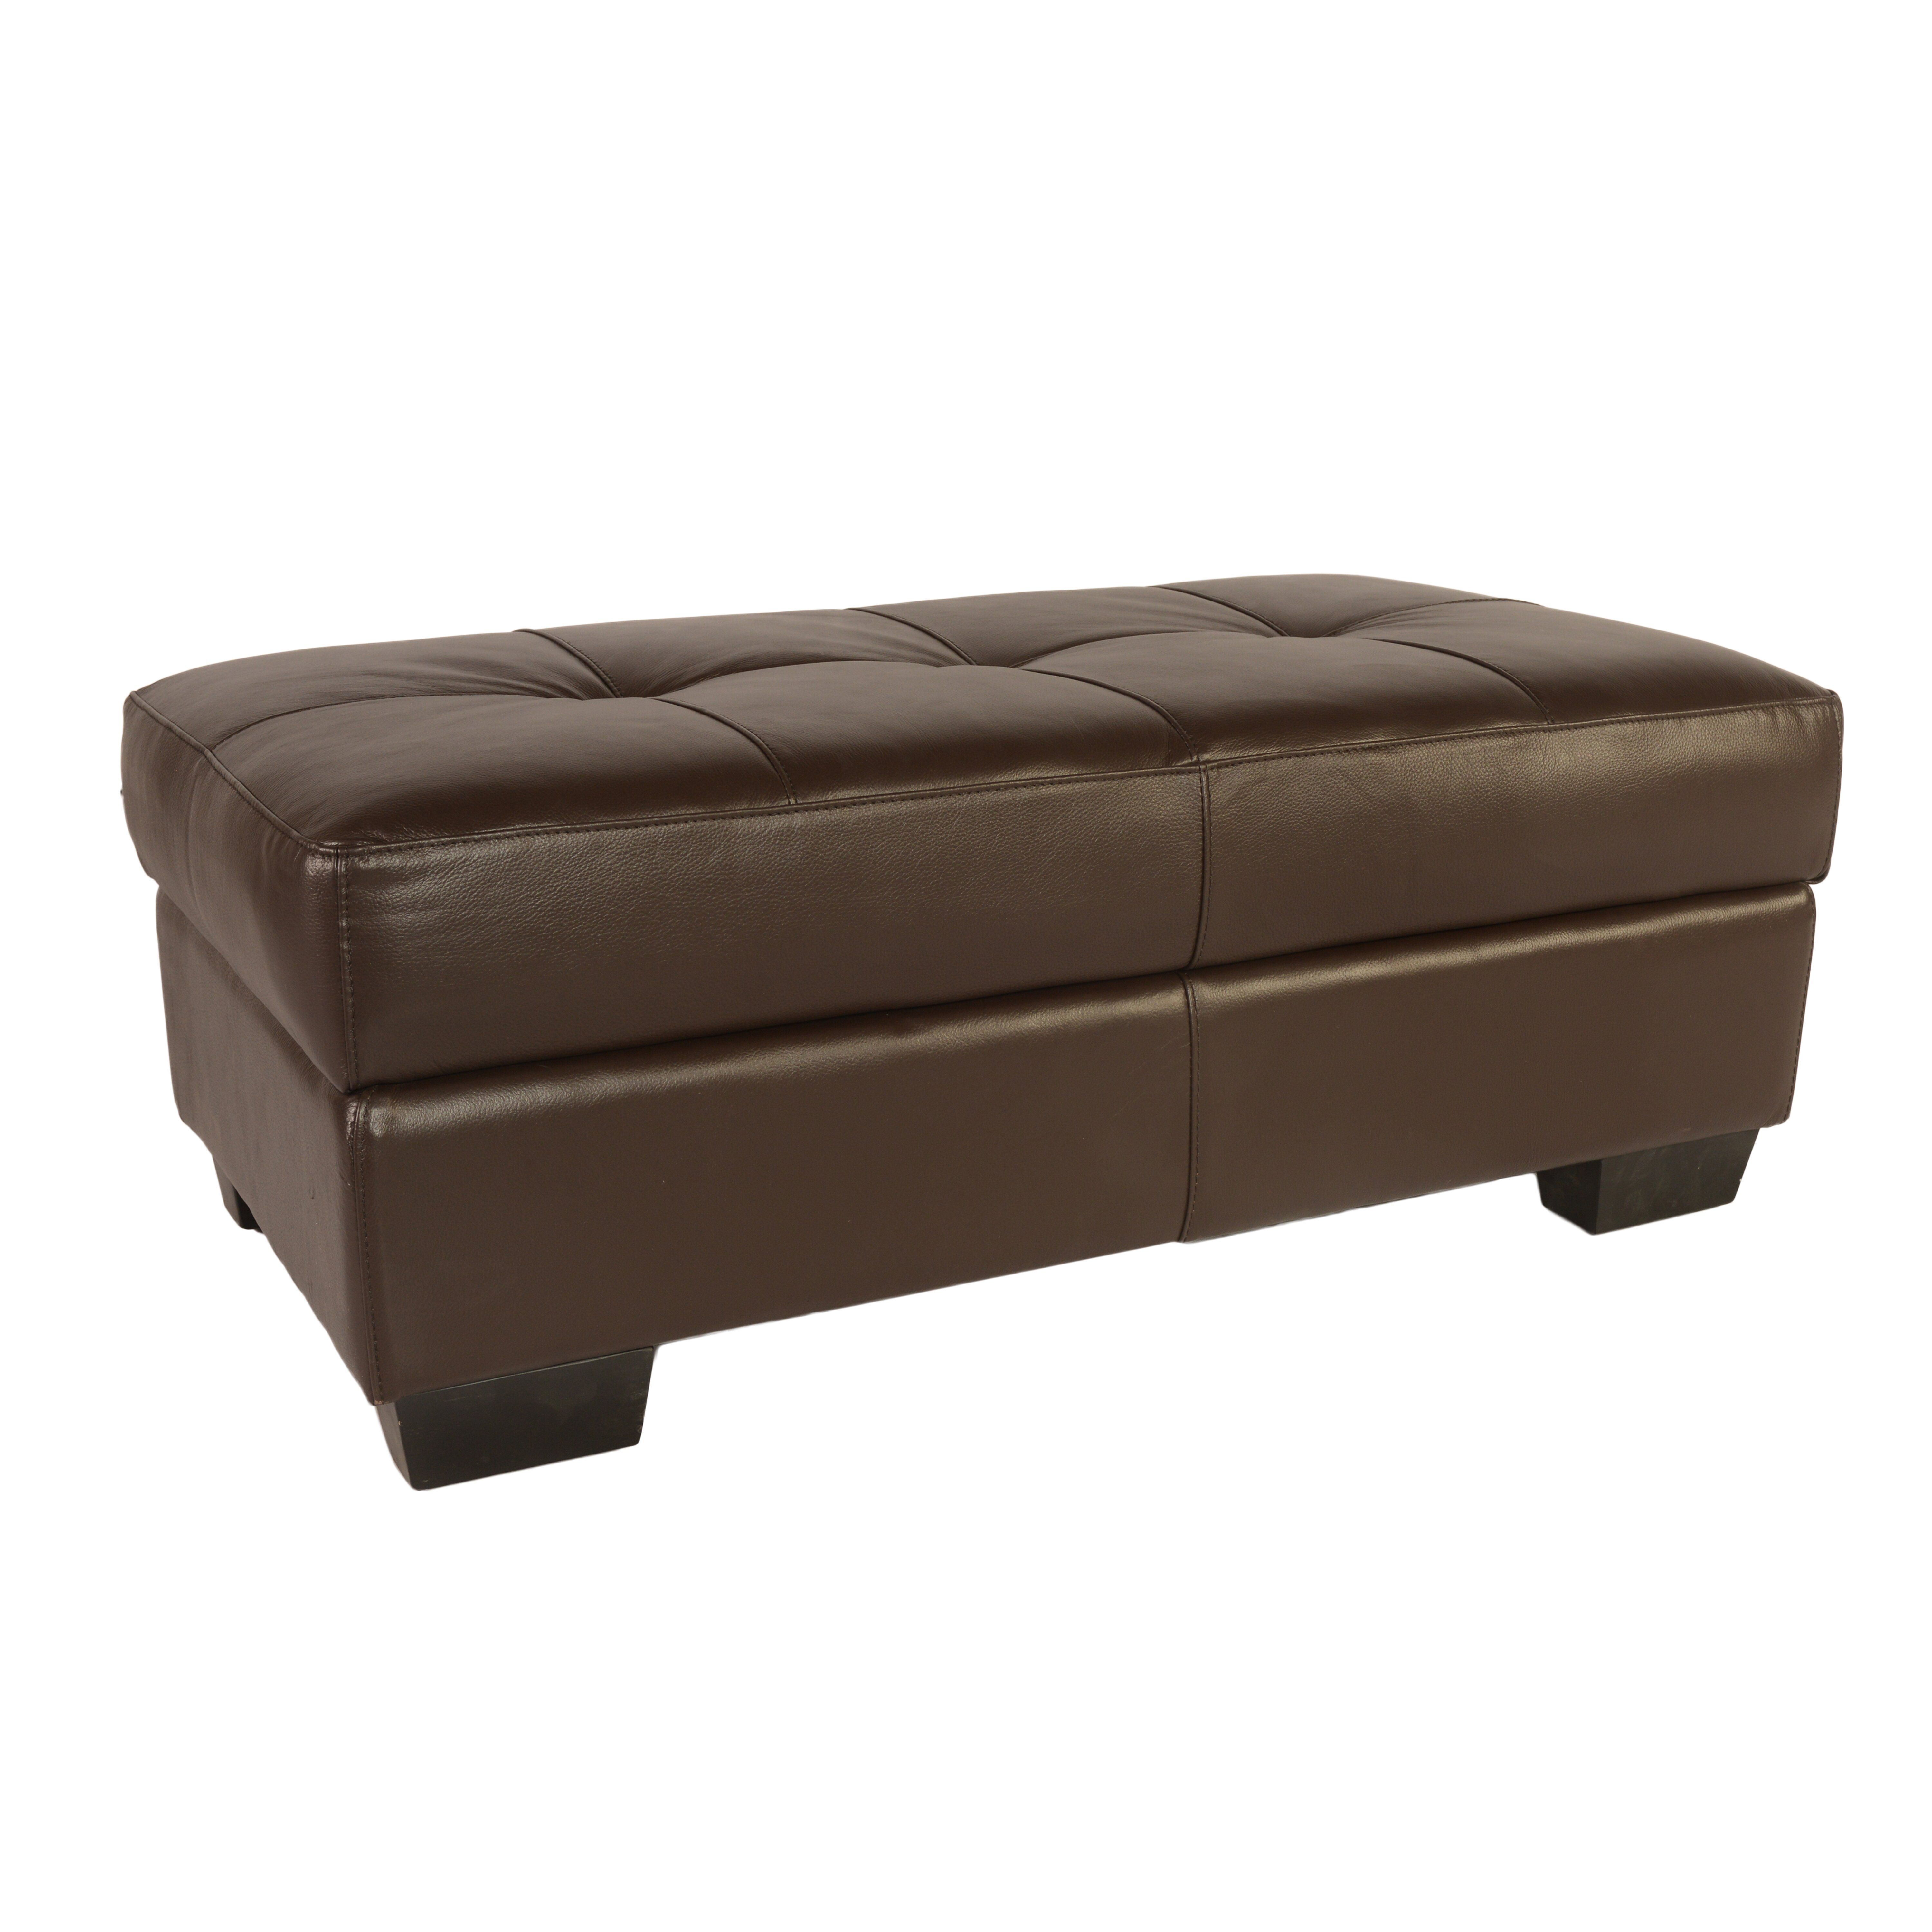 Lazzaro leather frandis leather storage ottoman reviews for What is an ottoman for